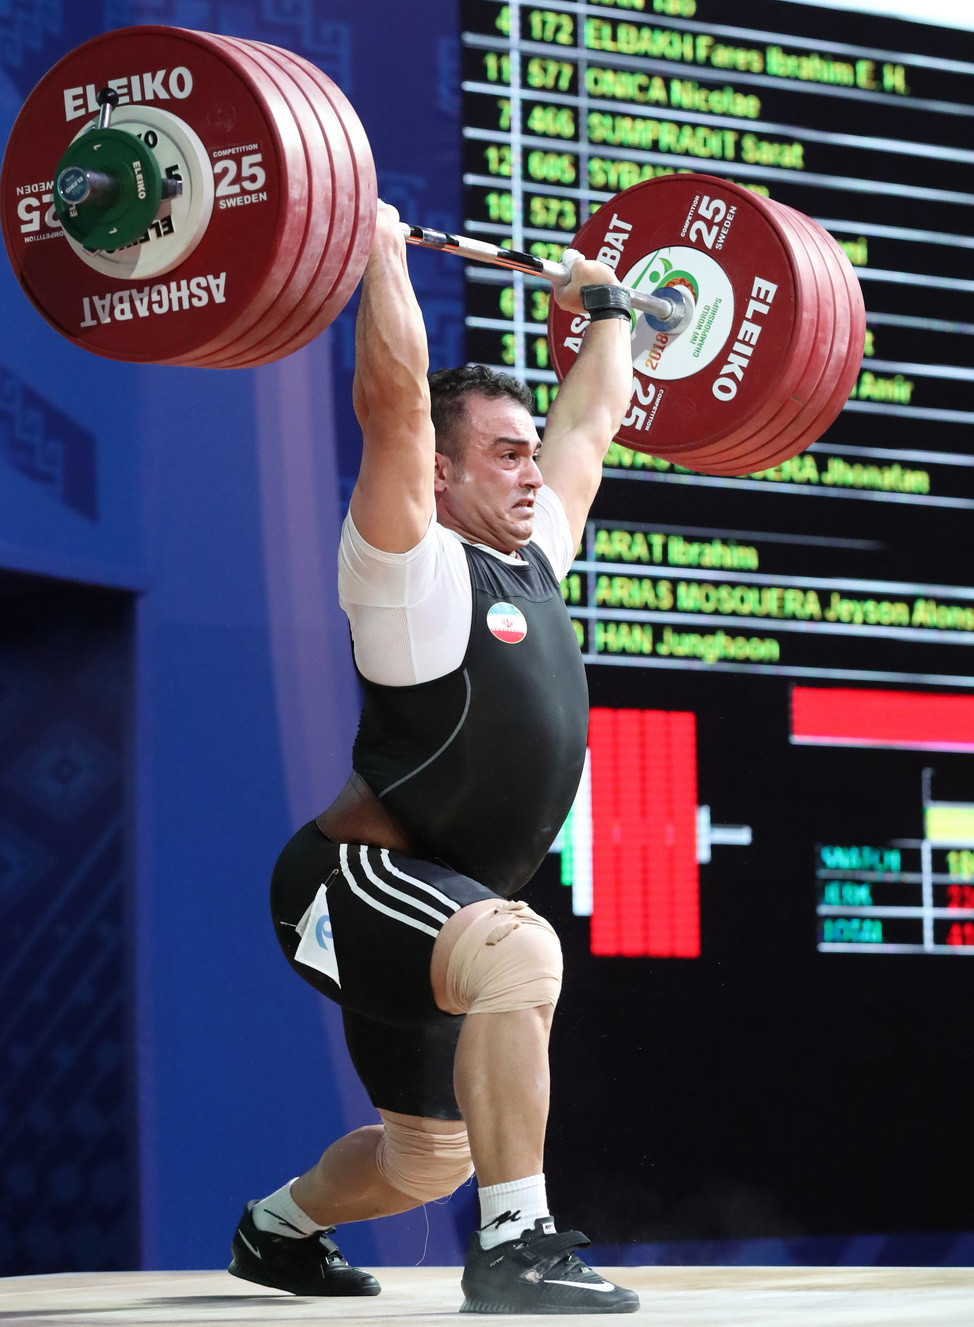 Moradi steals show on day seven of 2018 IWF World Championships